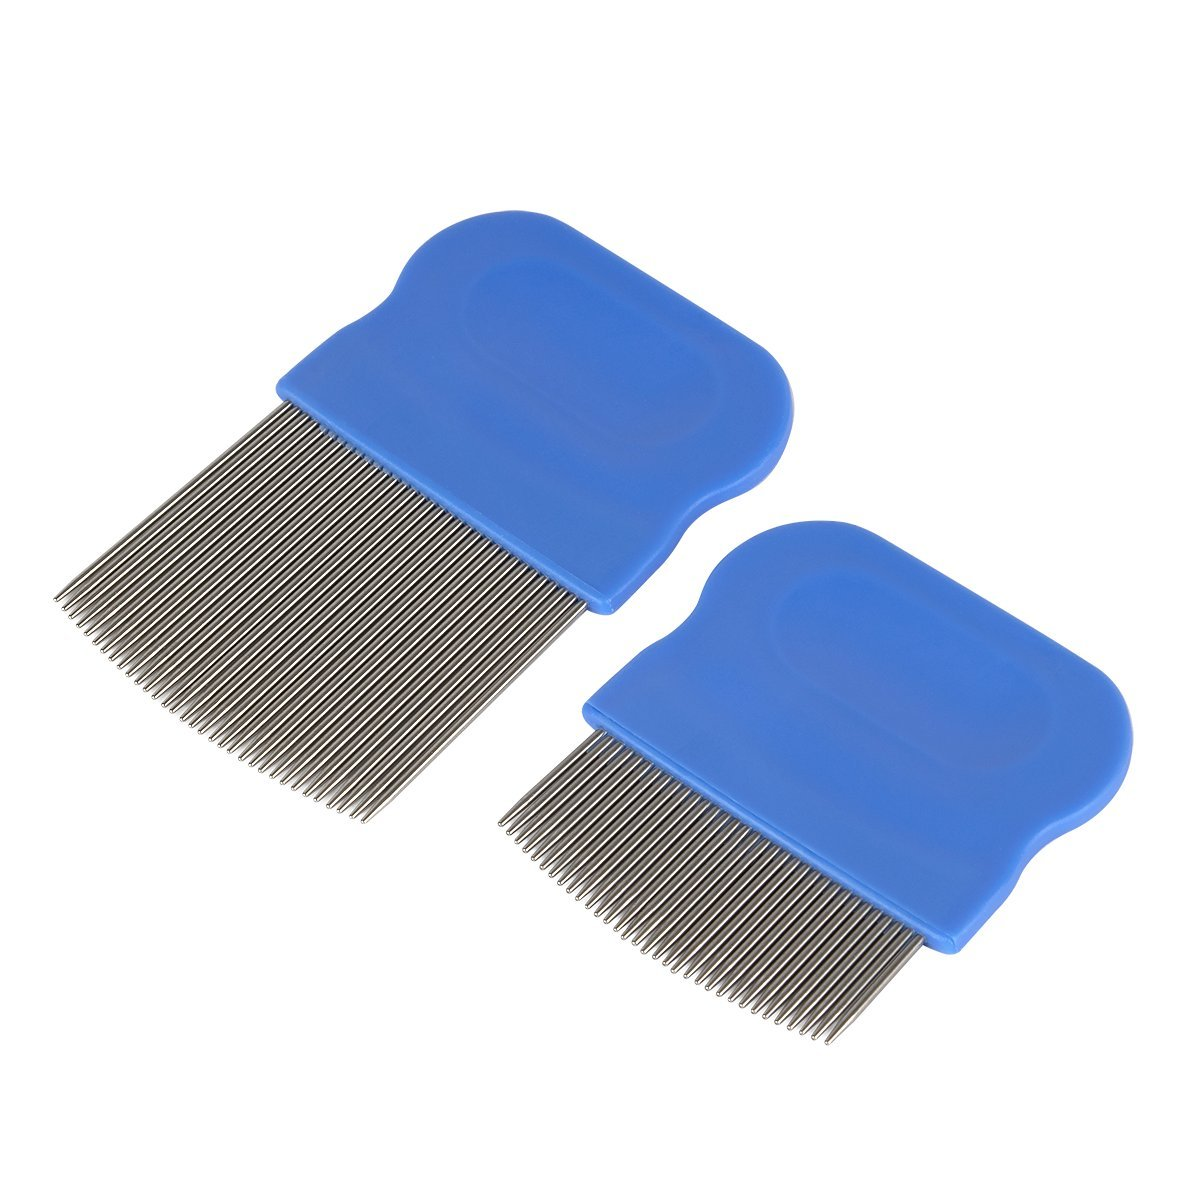 Acu-Life Lice Comb, 2 Pack: Amazon.in: Health & Personal Care